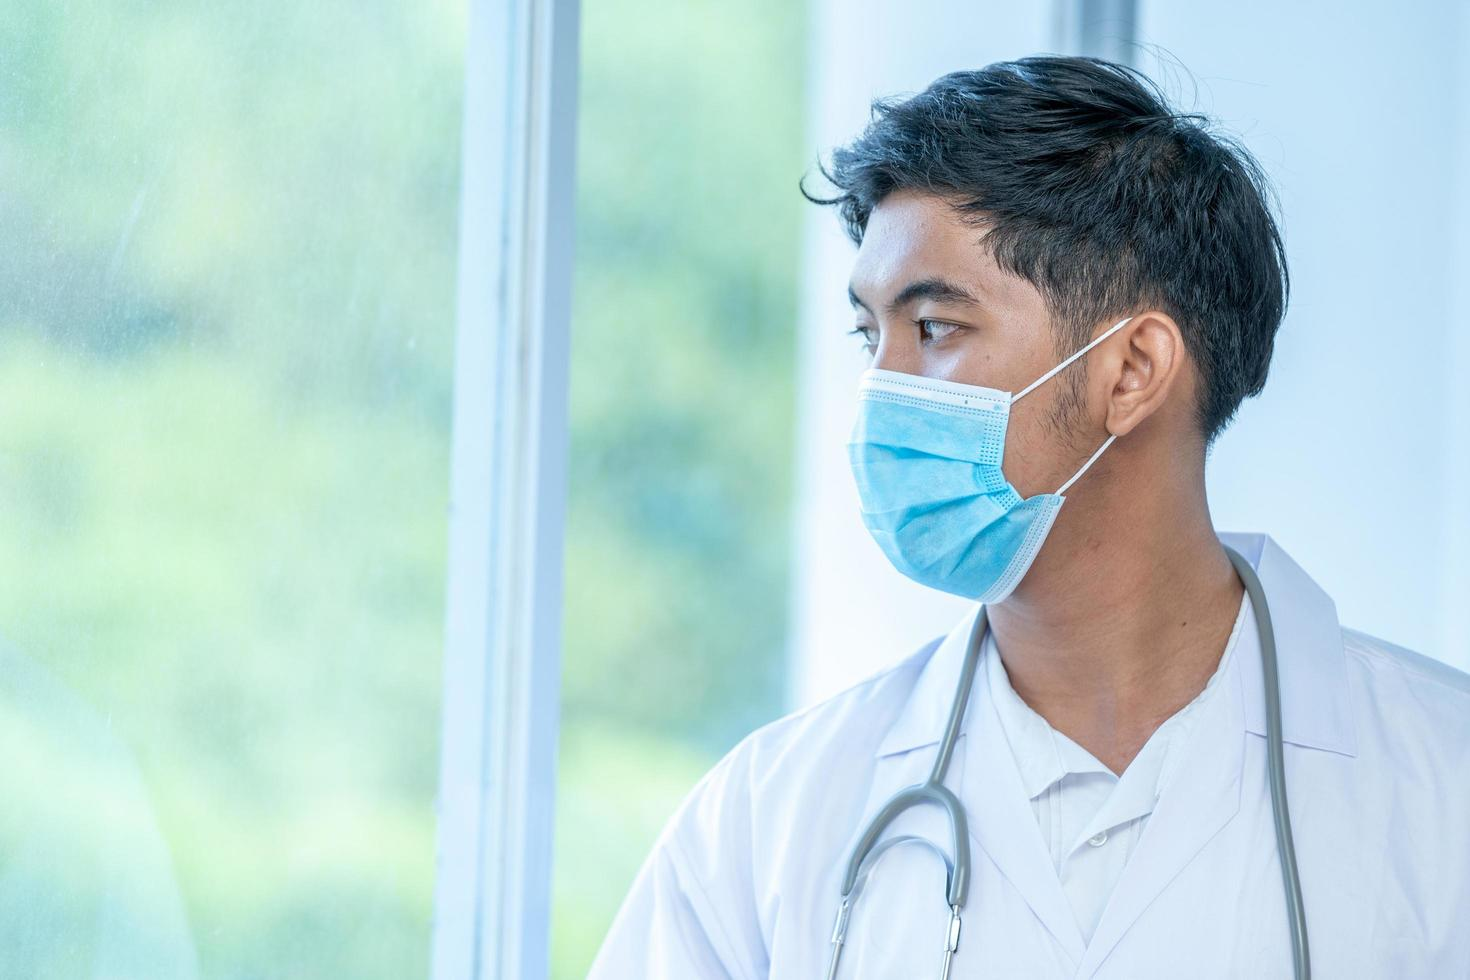 Man with face mask and stethoscope looking out window photo